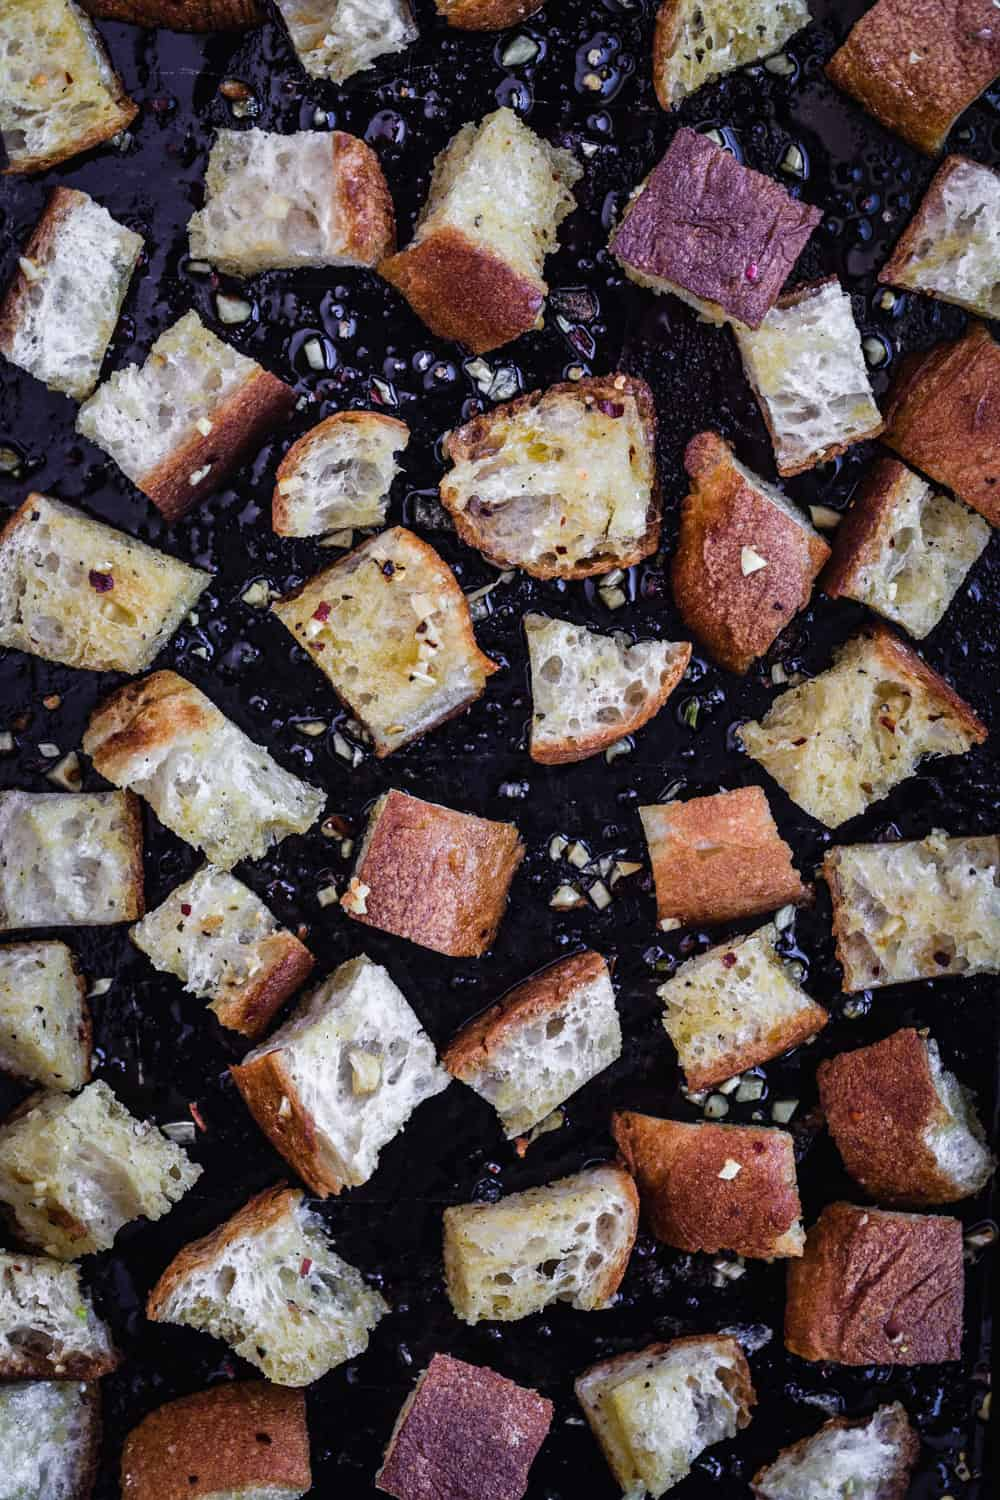 Croutons just out of oven, on baking sheet.